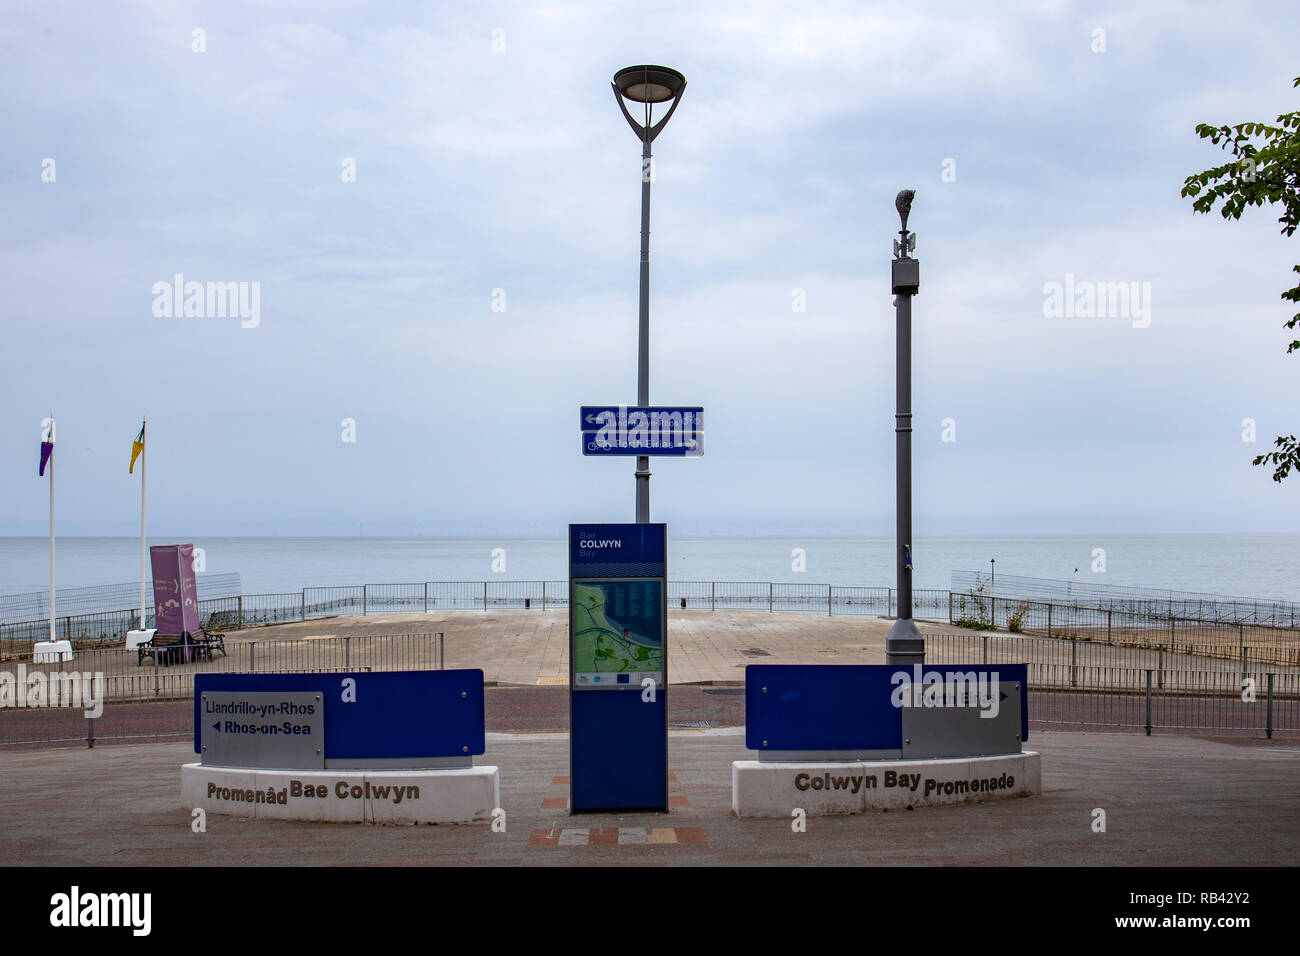 Colwyn Bay with the former location of the demolished Victoria Pier Colwyn Wales UK - Stock Image